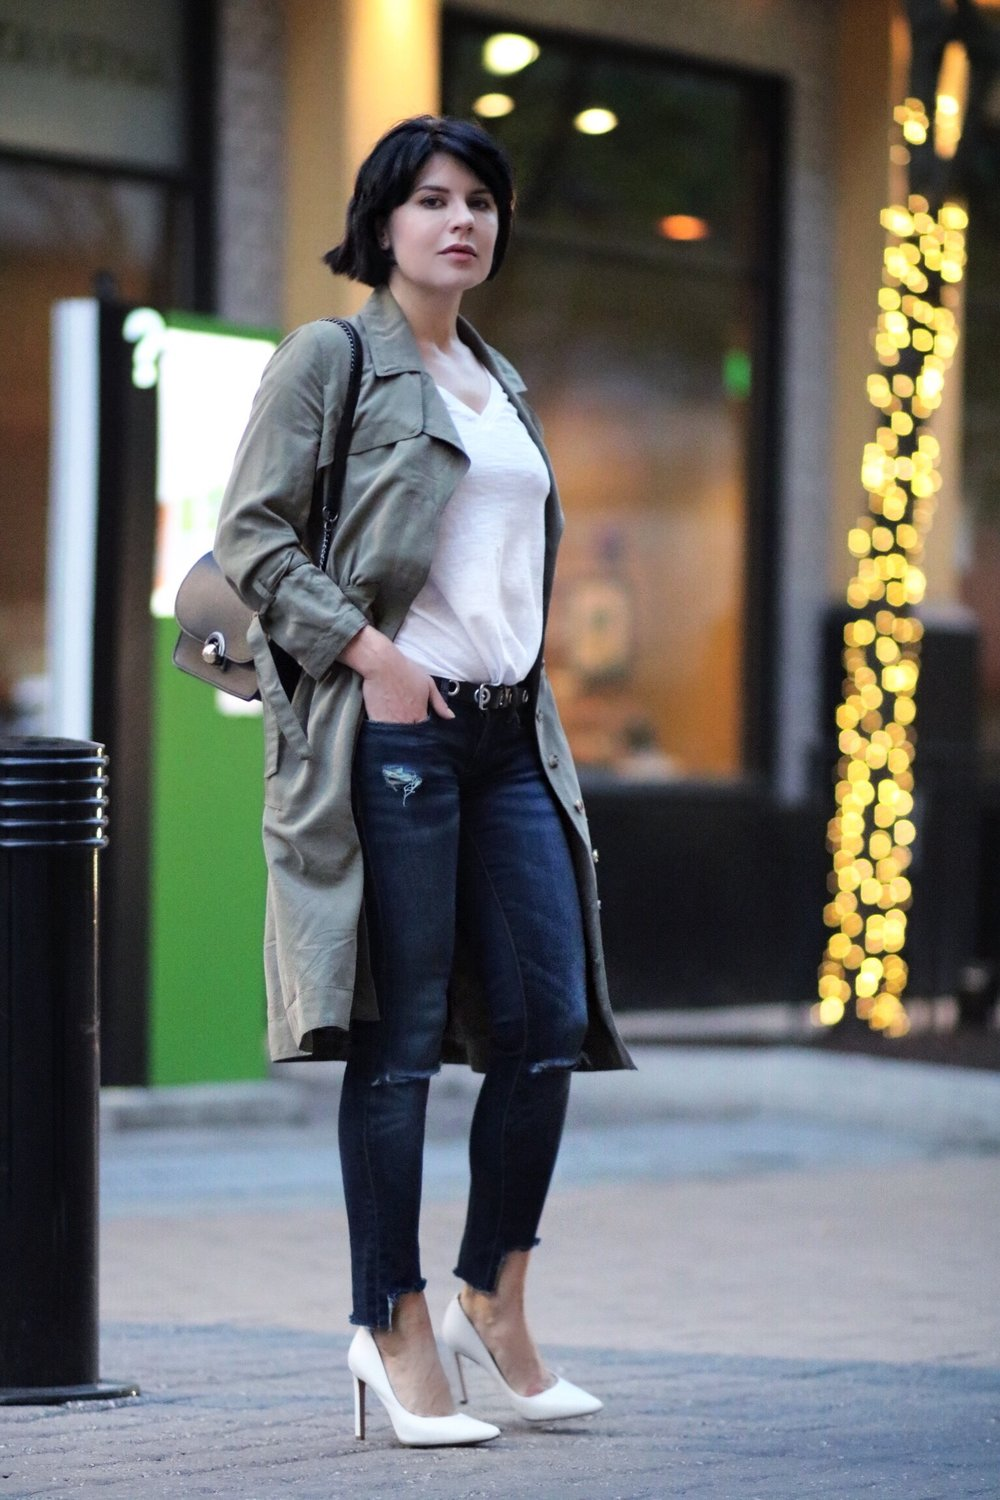 white tee and denim outfit street style